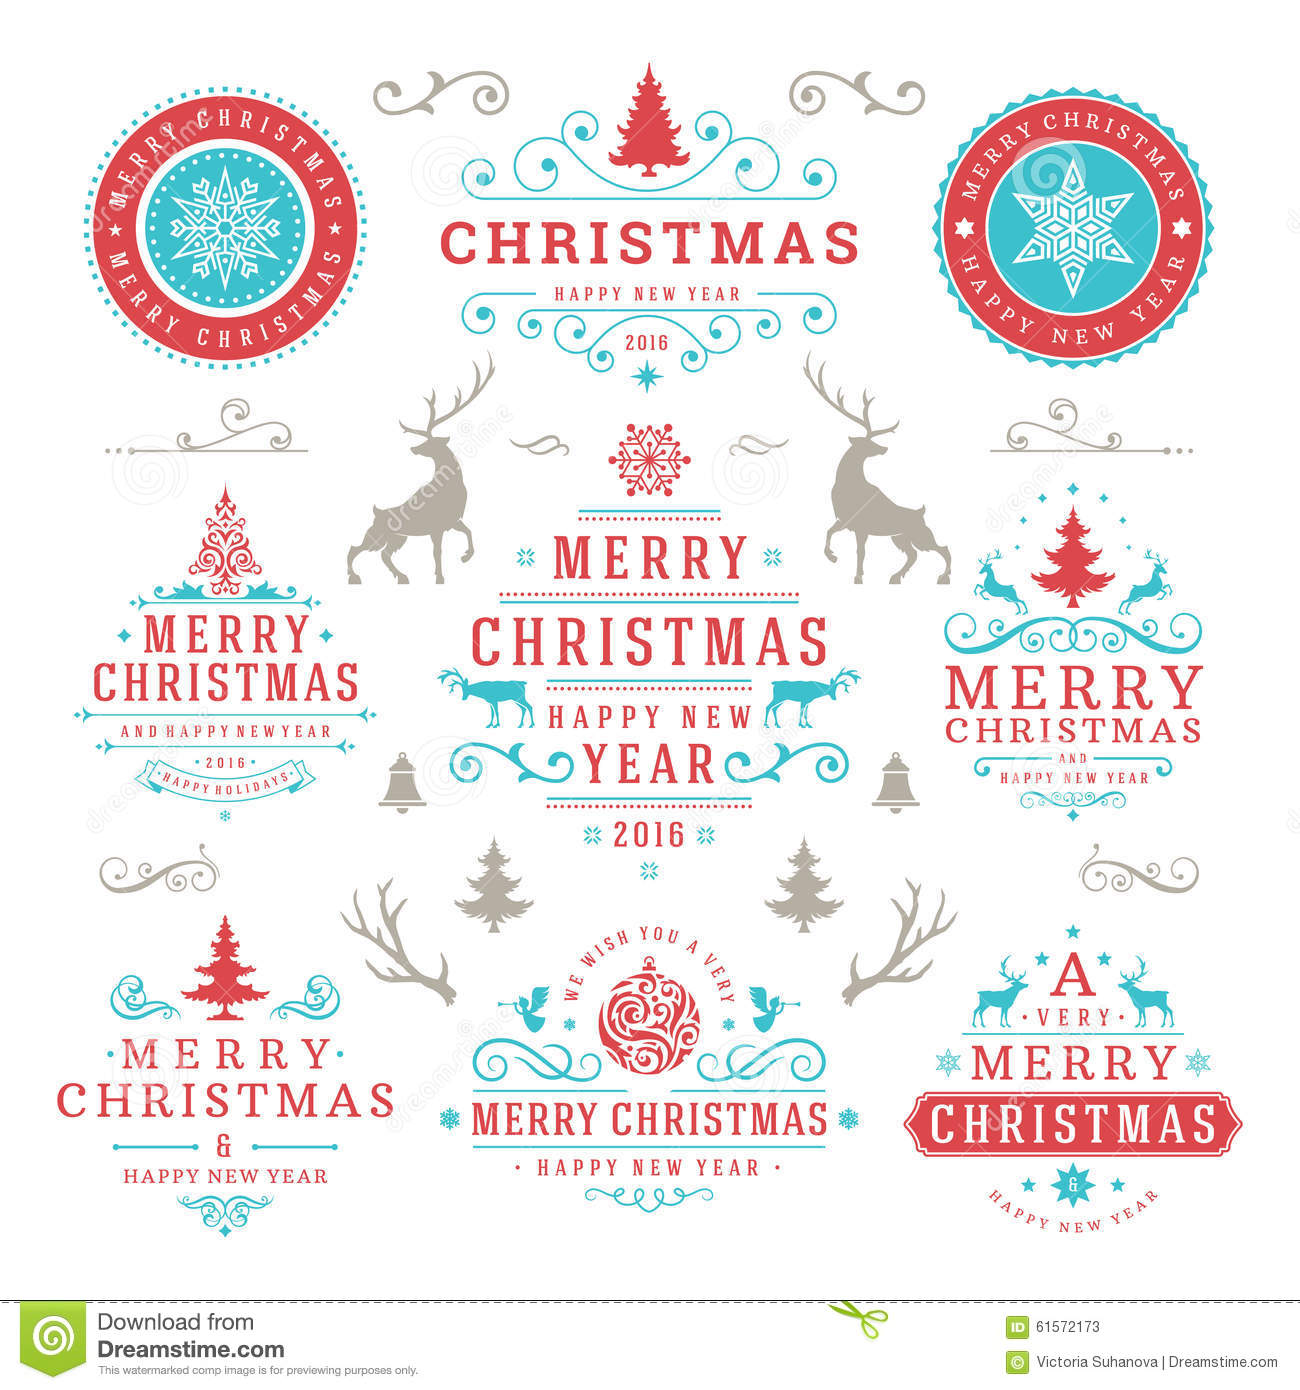 Merry Christmas And Happy New Year Wishes Stock Vector ...